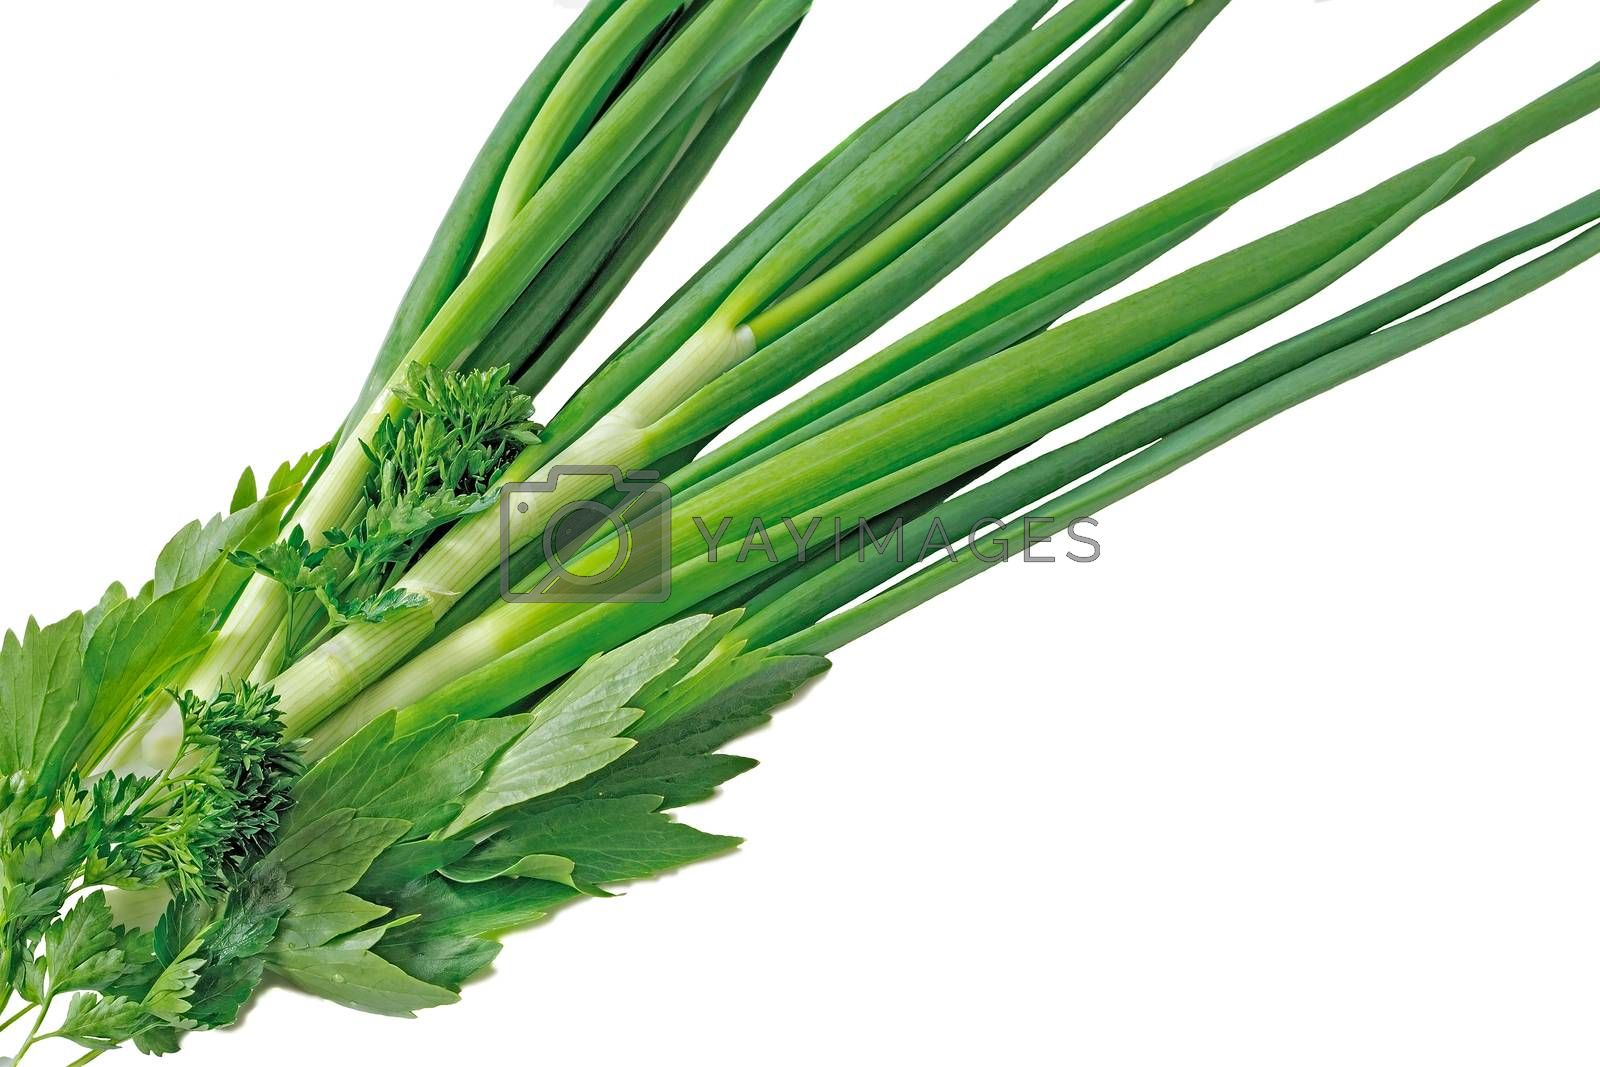 Royalty free image of Green onions, parsley and sorrel on a white background by georgina198